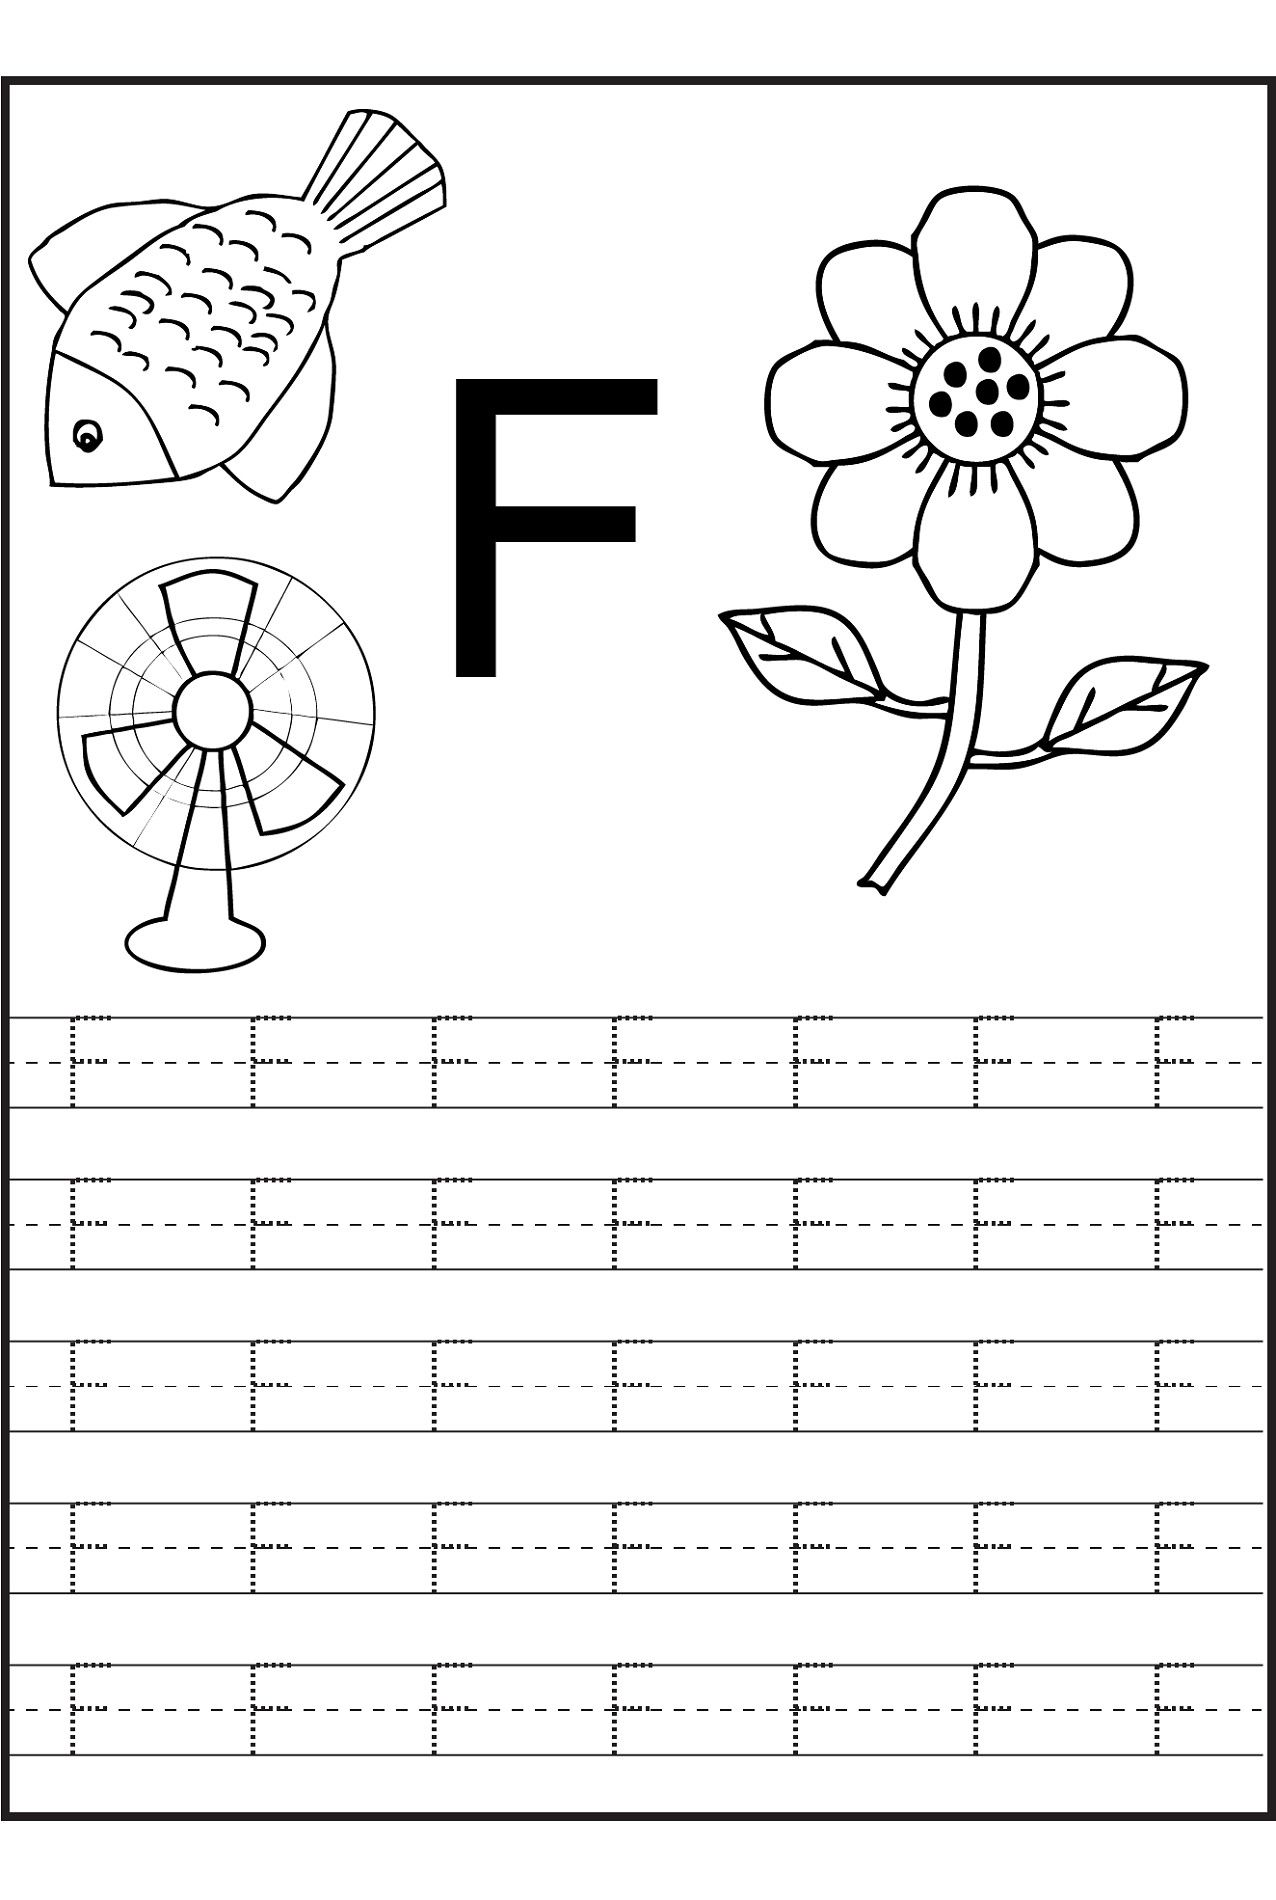 4 Printable Tracing Letter E Worksheets In 2020 Alphabet Writing Worksheets Writing Practice Worksheets Letter Tracing Worksheets